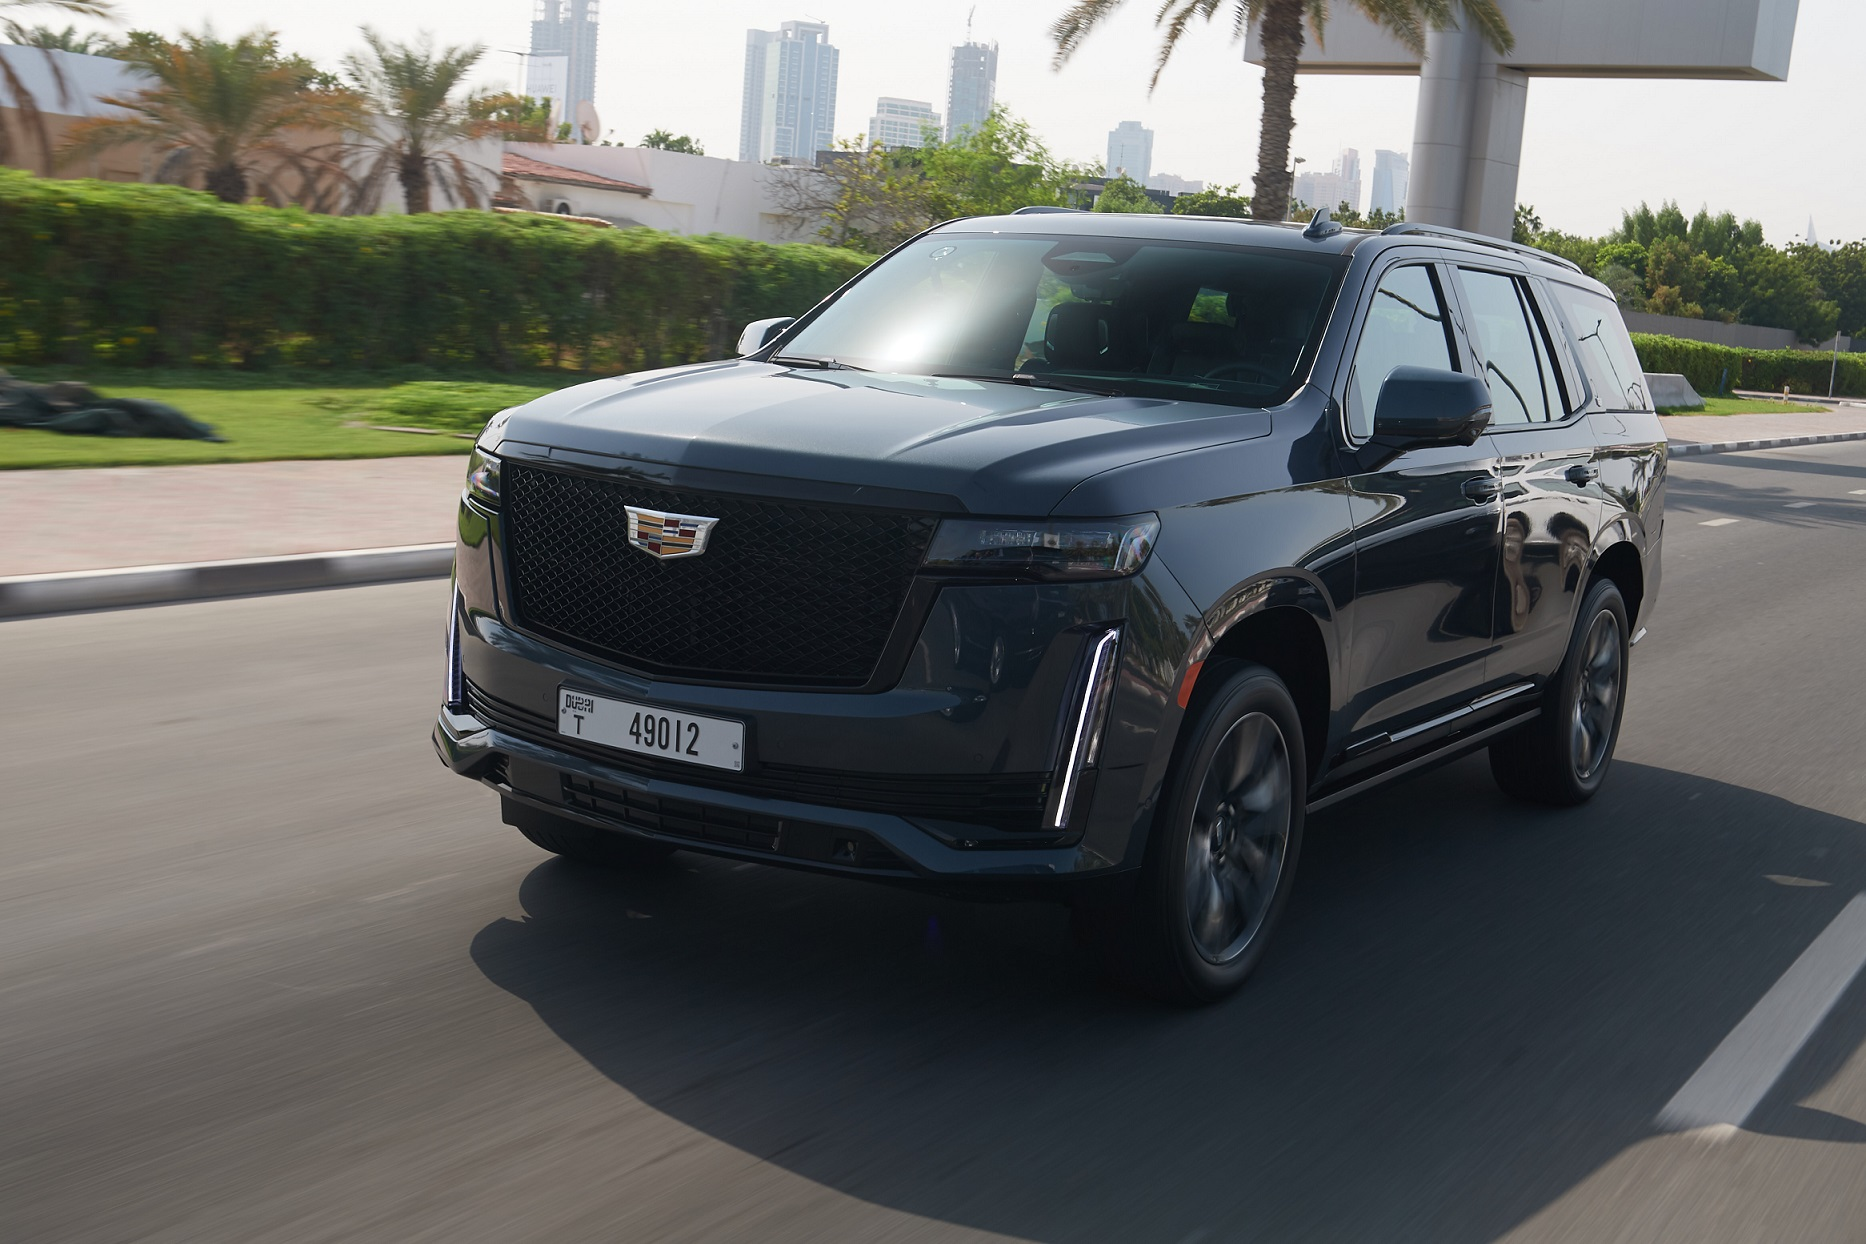 Move and Be Moved in style with the 2021 Cadillac Escalade